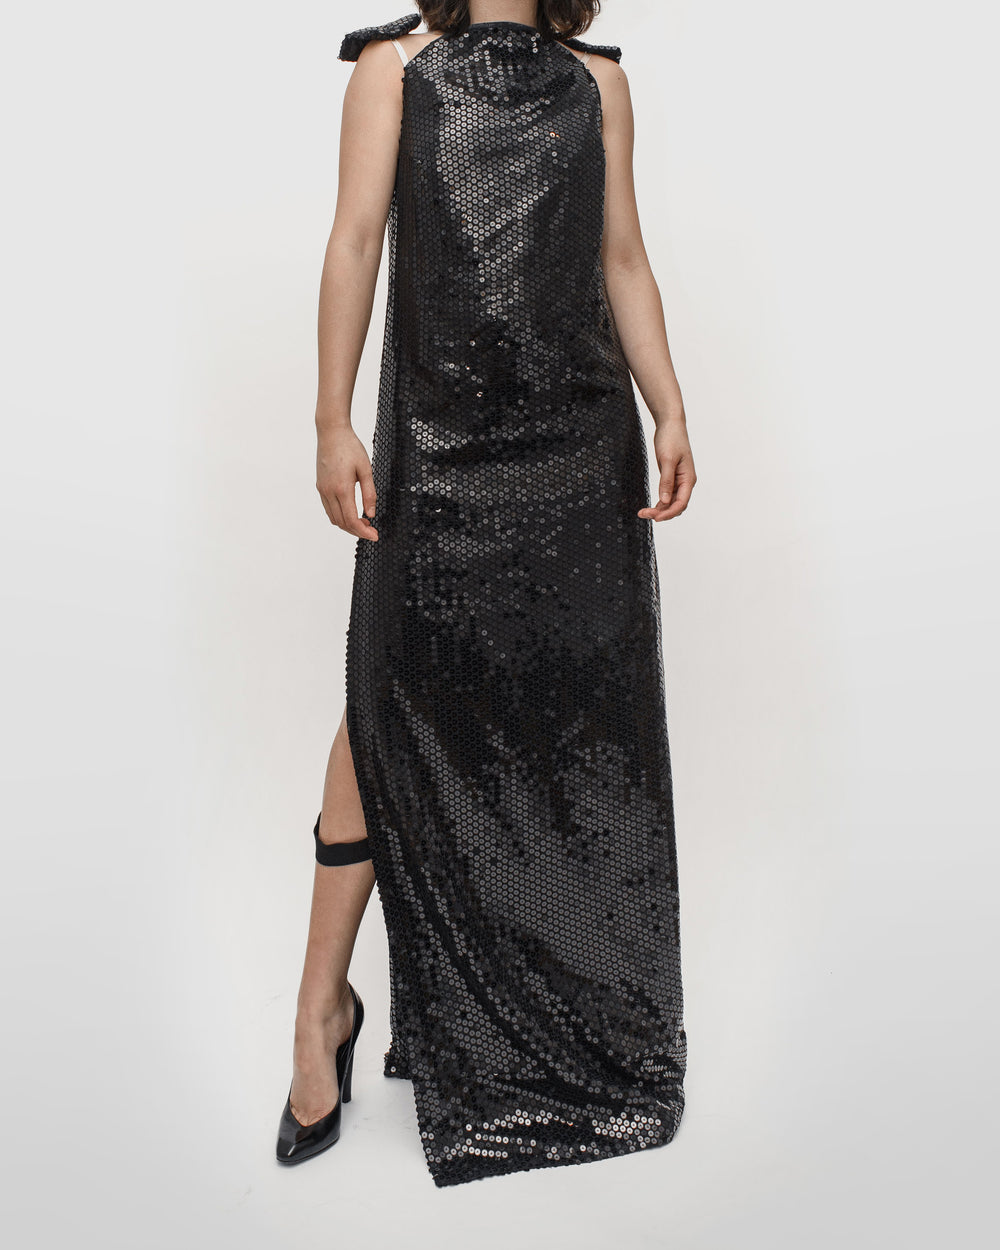 Helmut Lang AW99 Sequined Bondage Astro Gown